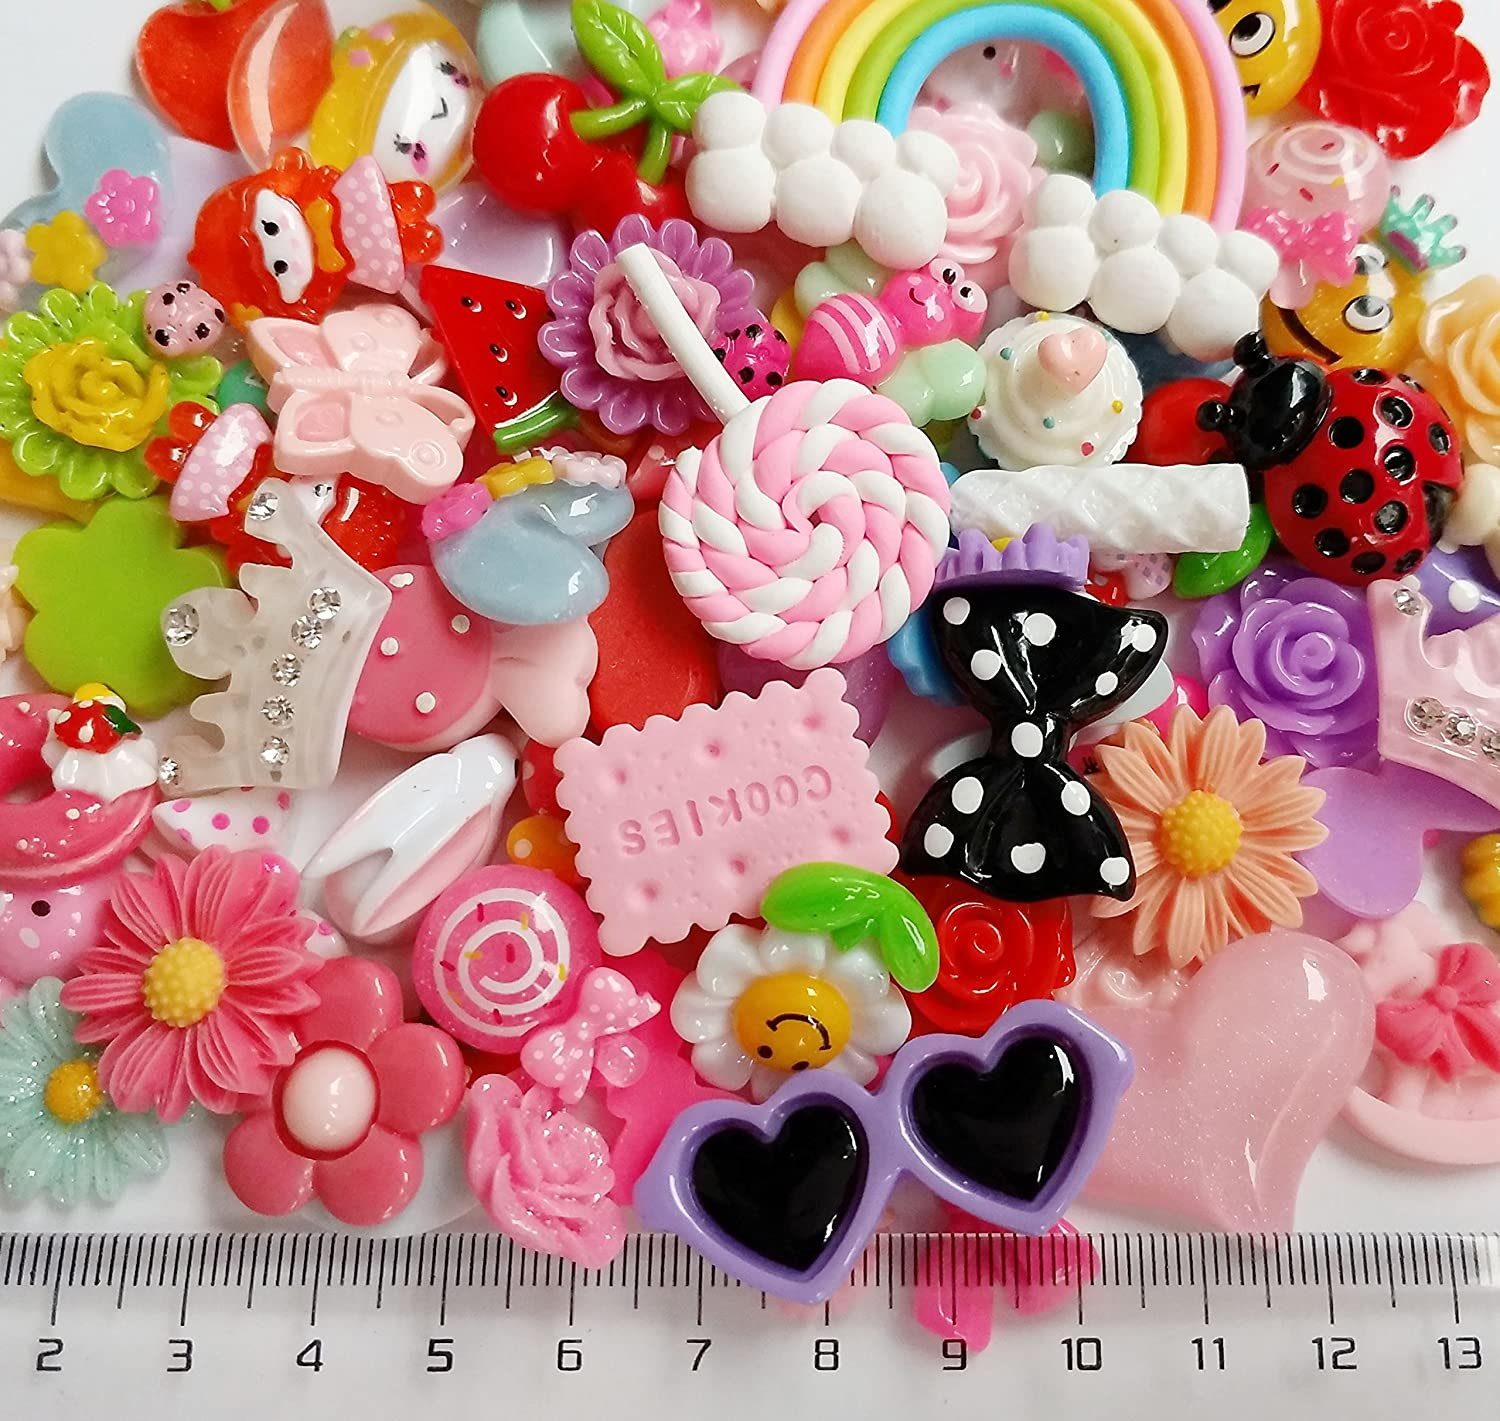 Chenkou Craft 50pcs Lots Mix Assort Easter DIY Flatbacks Resin Flat Back Buttons Scrapbooking Slime Charm Chenkou Trade B0489MIX50